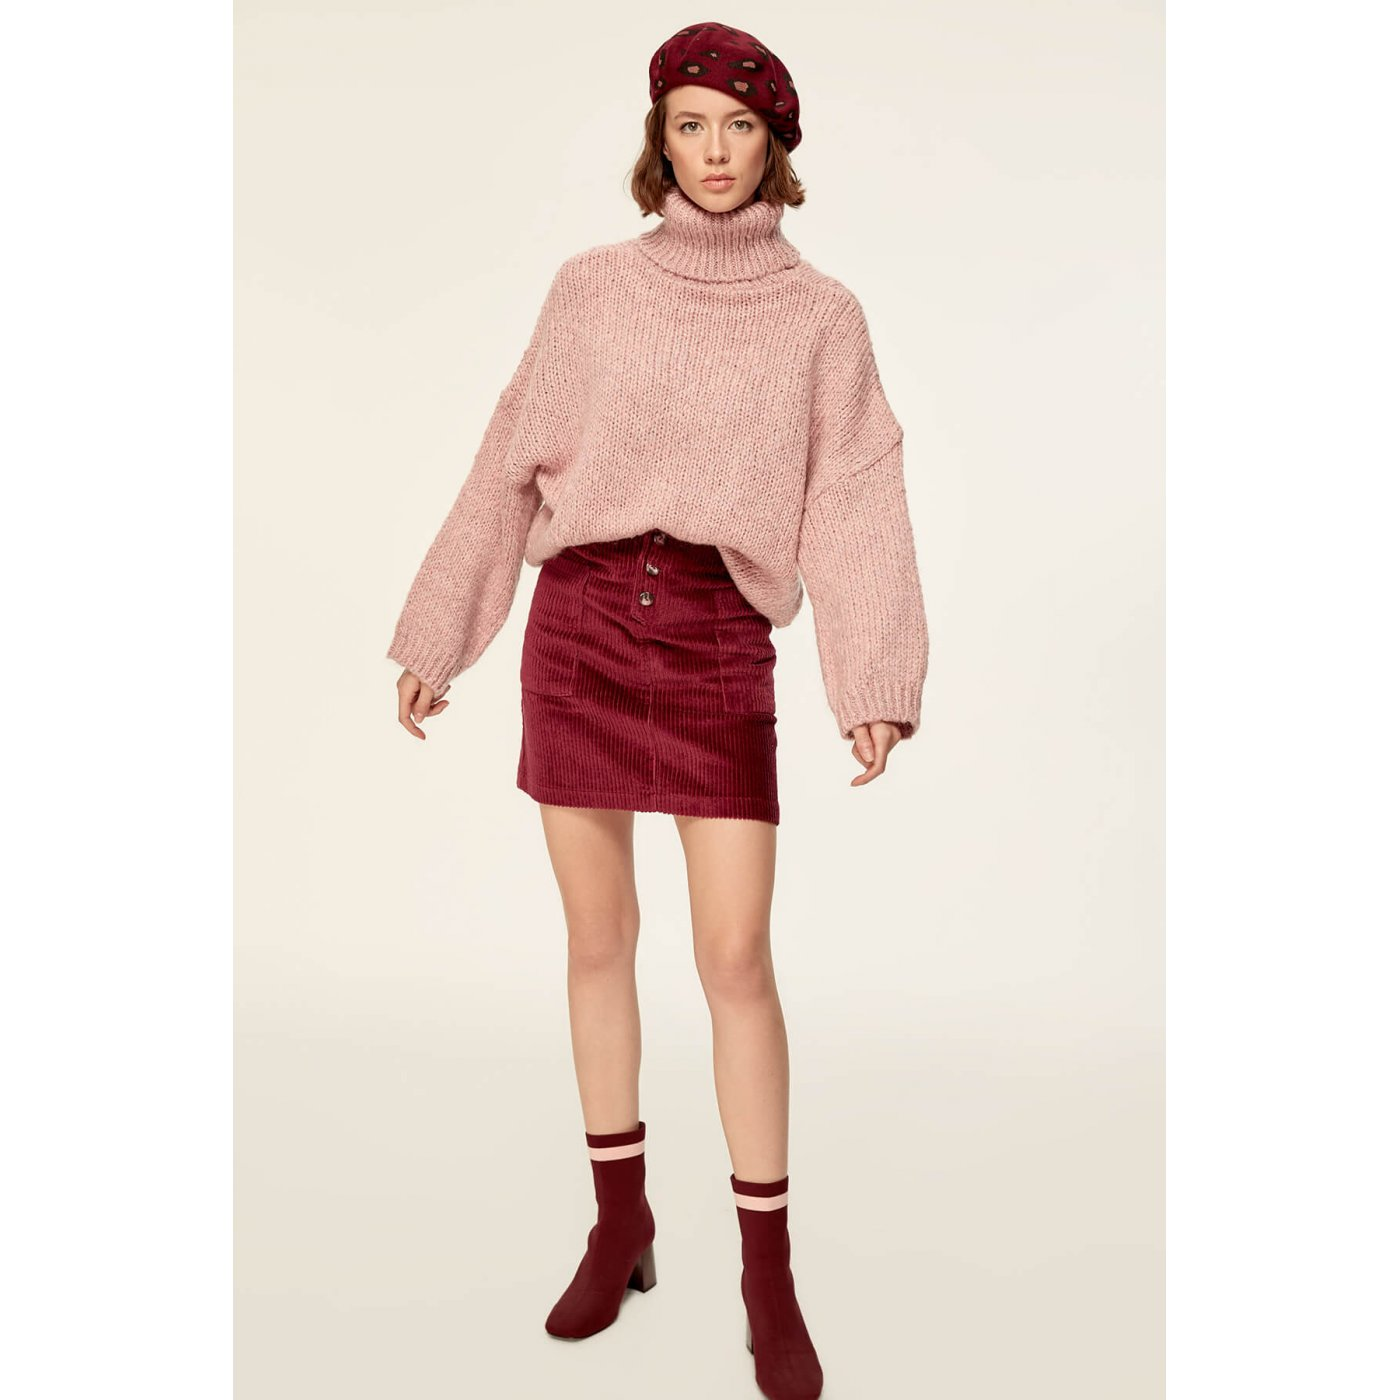 006fb656a Trendyol Burgundy-Button Velvet Skirt Burgundy - Glami.cz